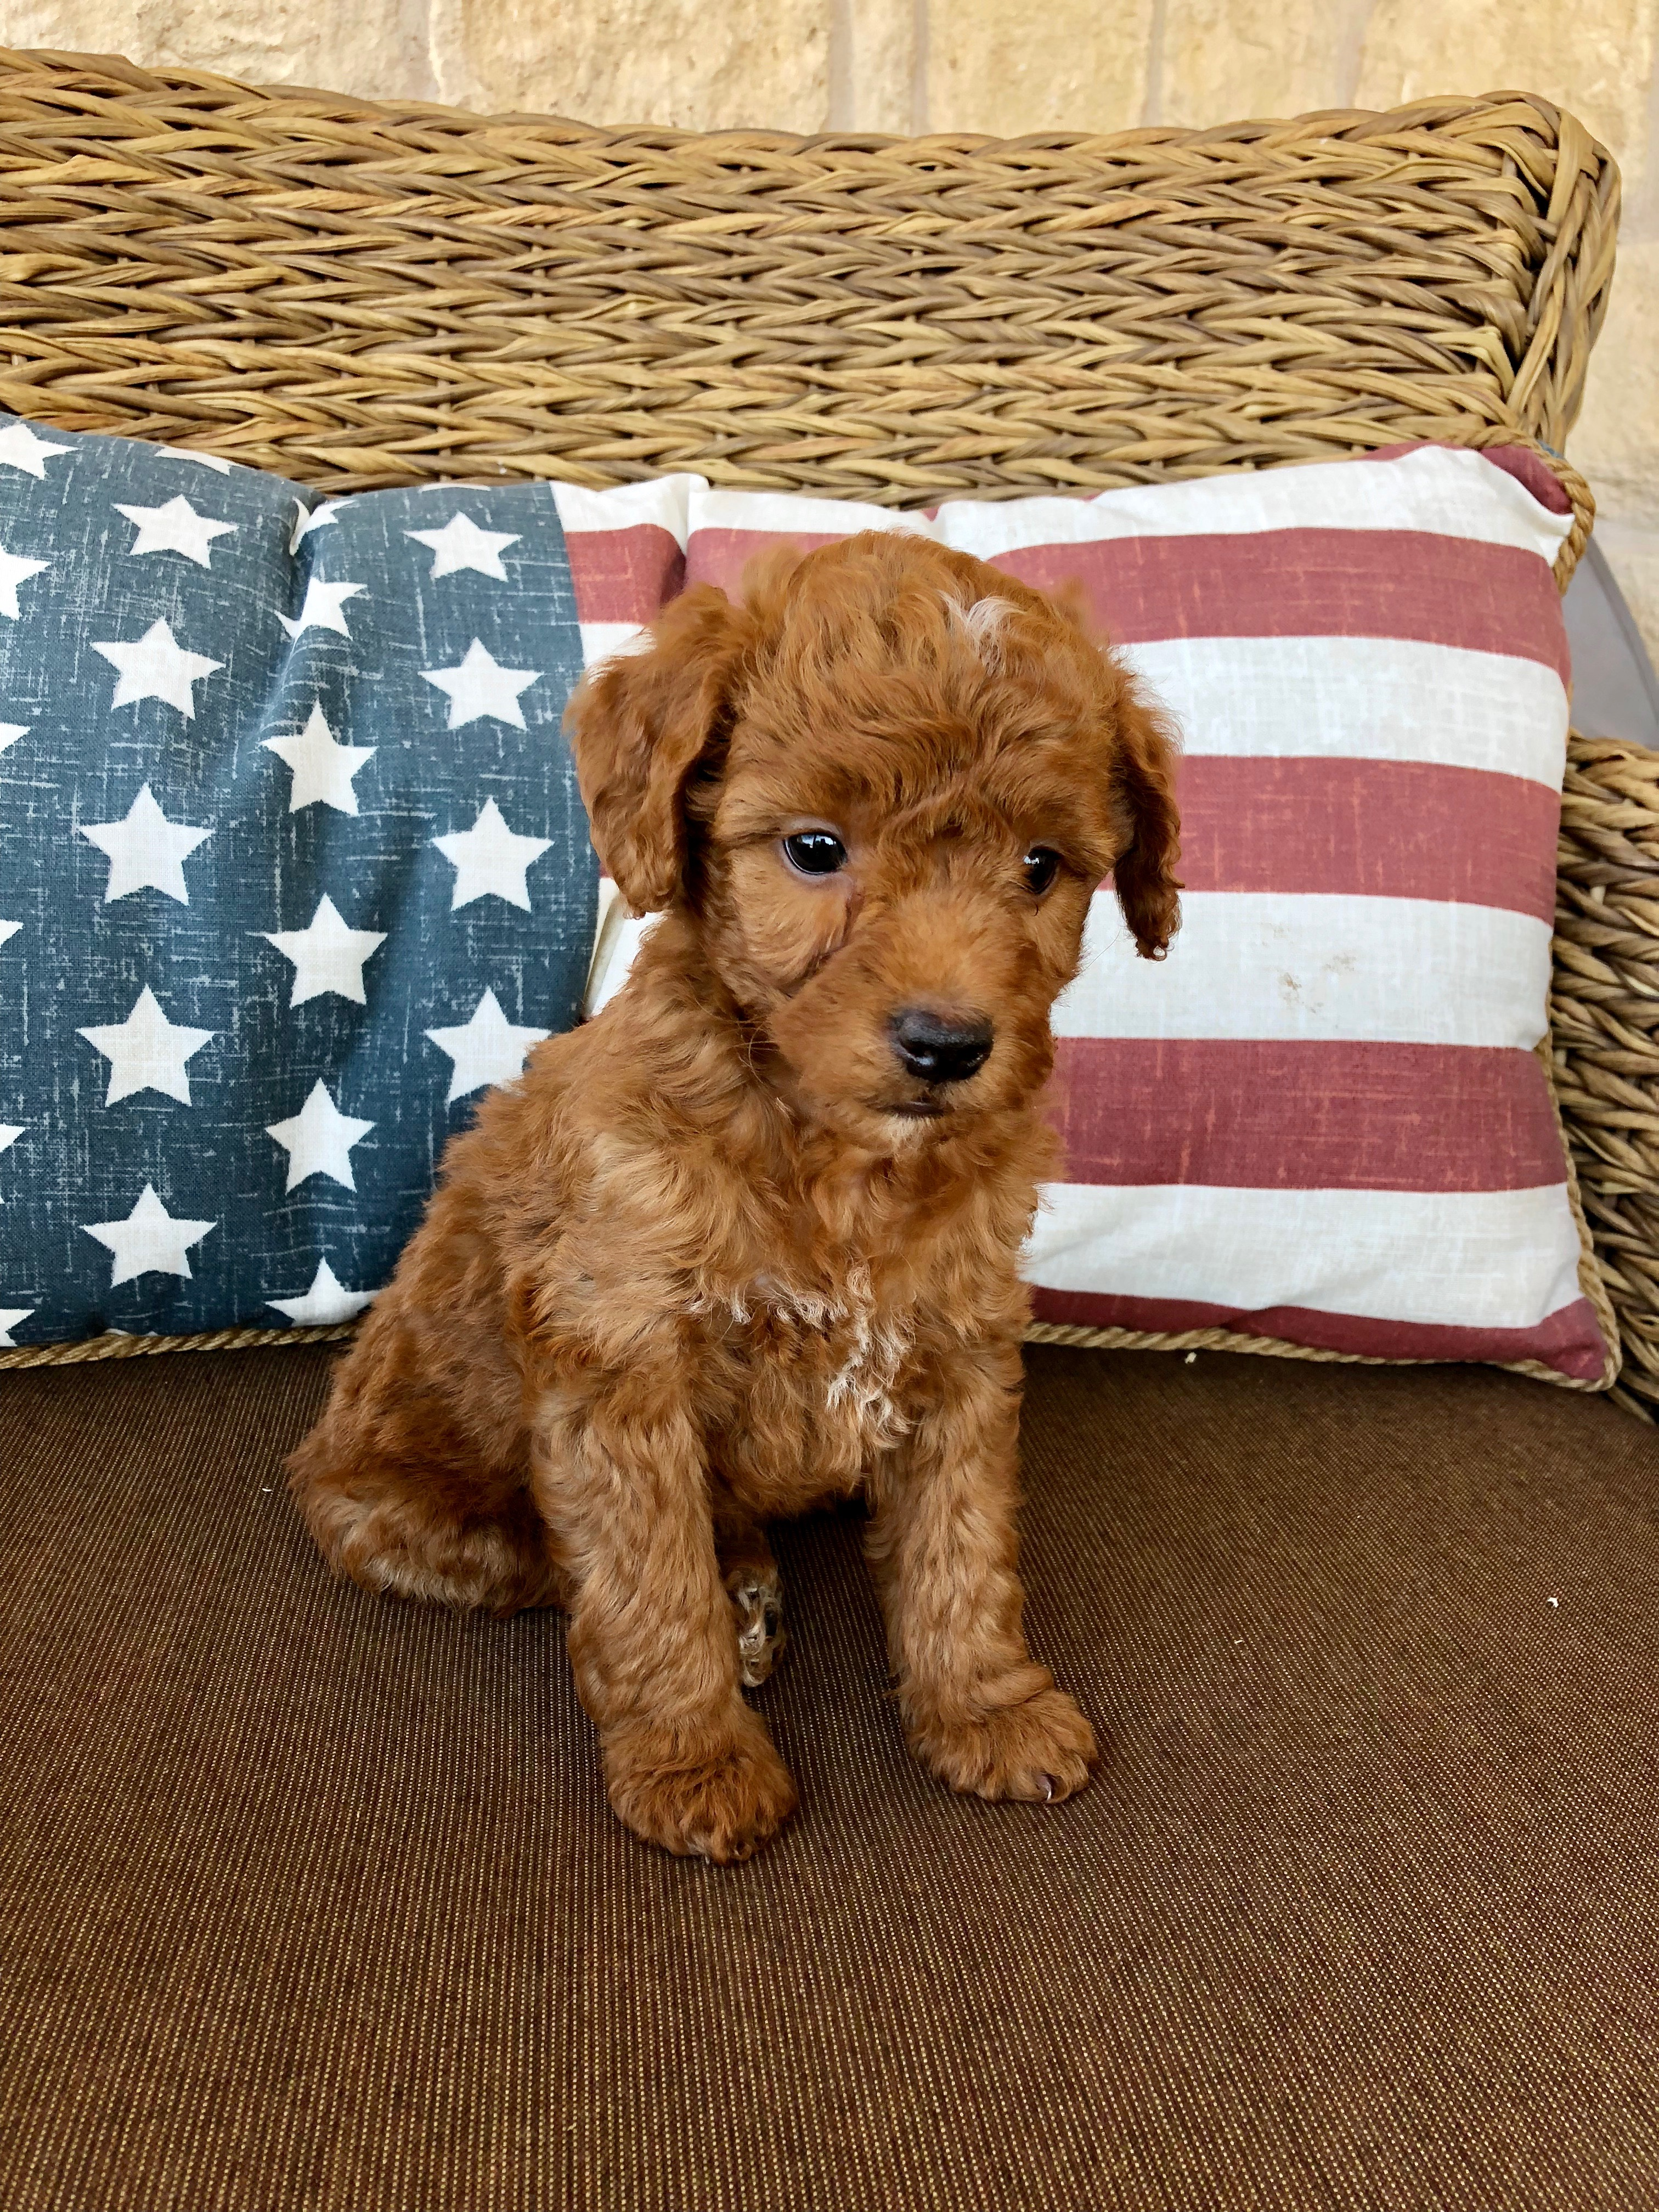 Mini F1b Goldendoodle Puppy